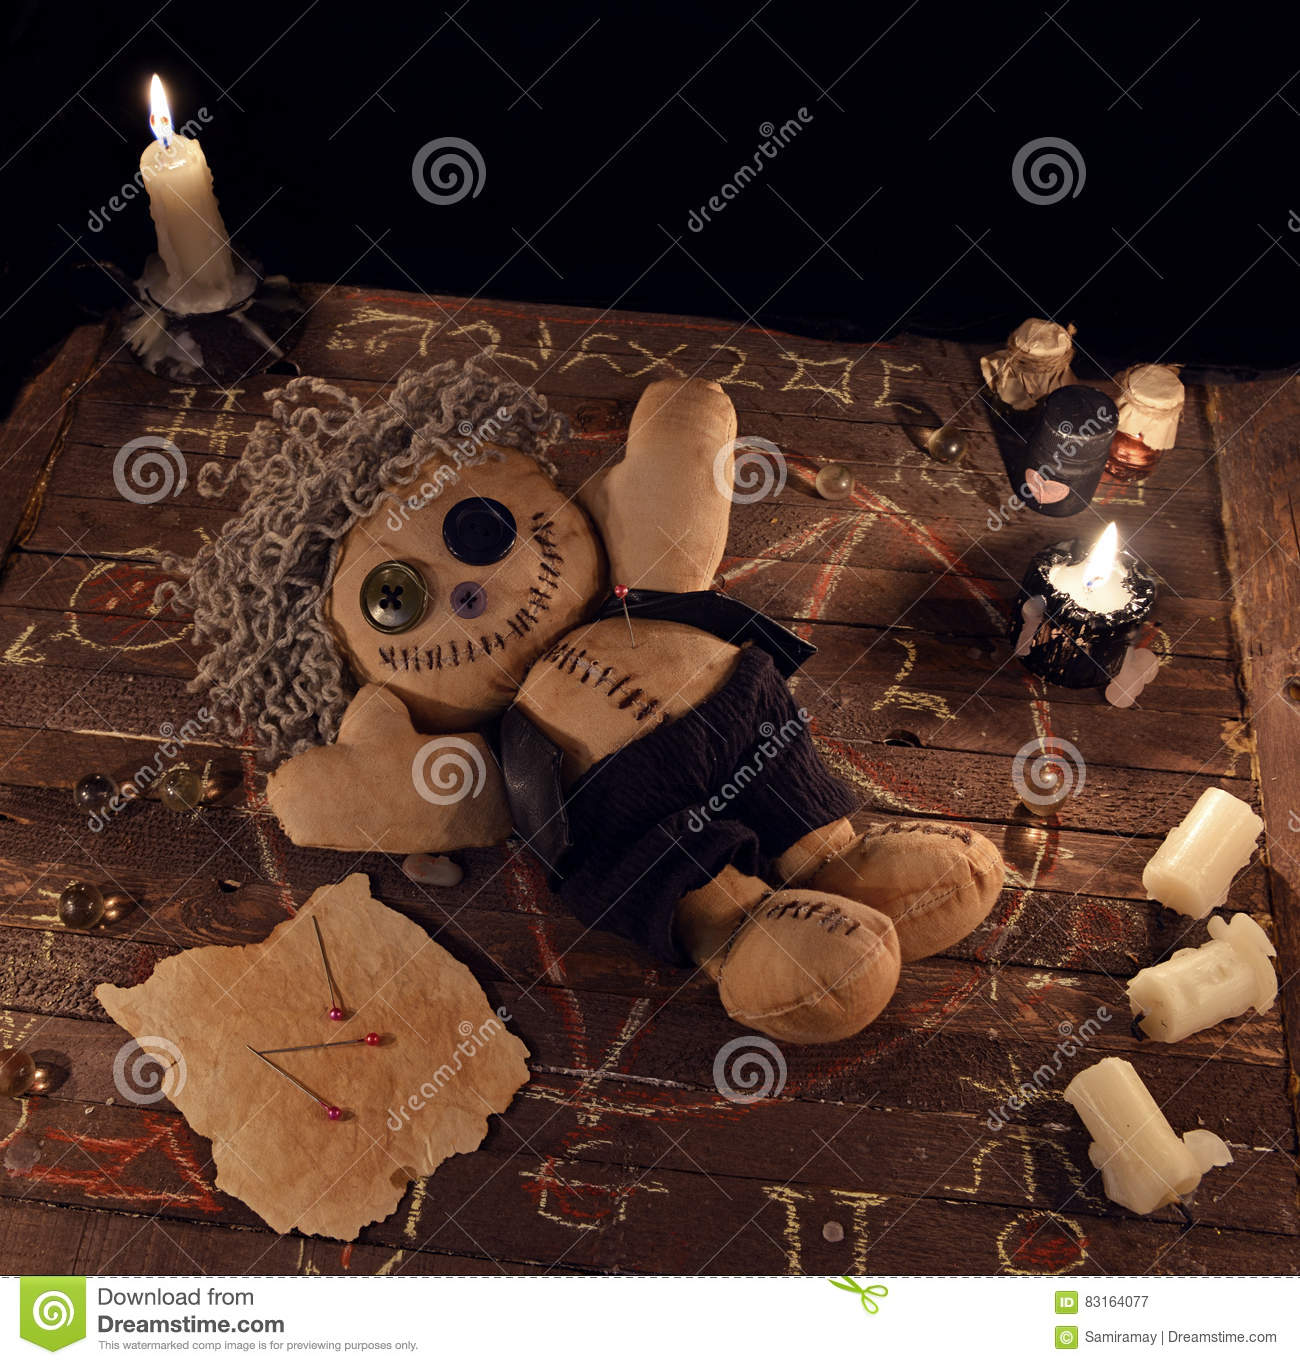 Voodoo Doll In Pentagram Circle On Wooden Planks Stock Image - Image